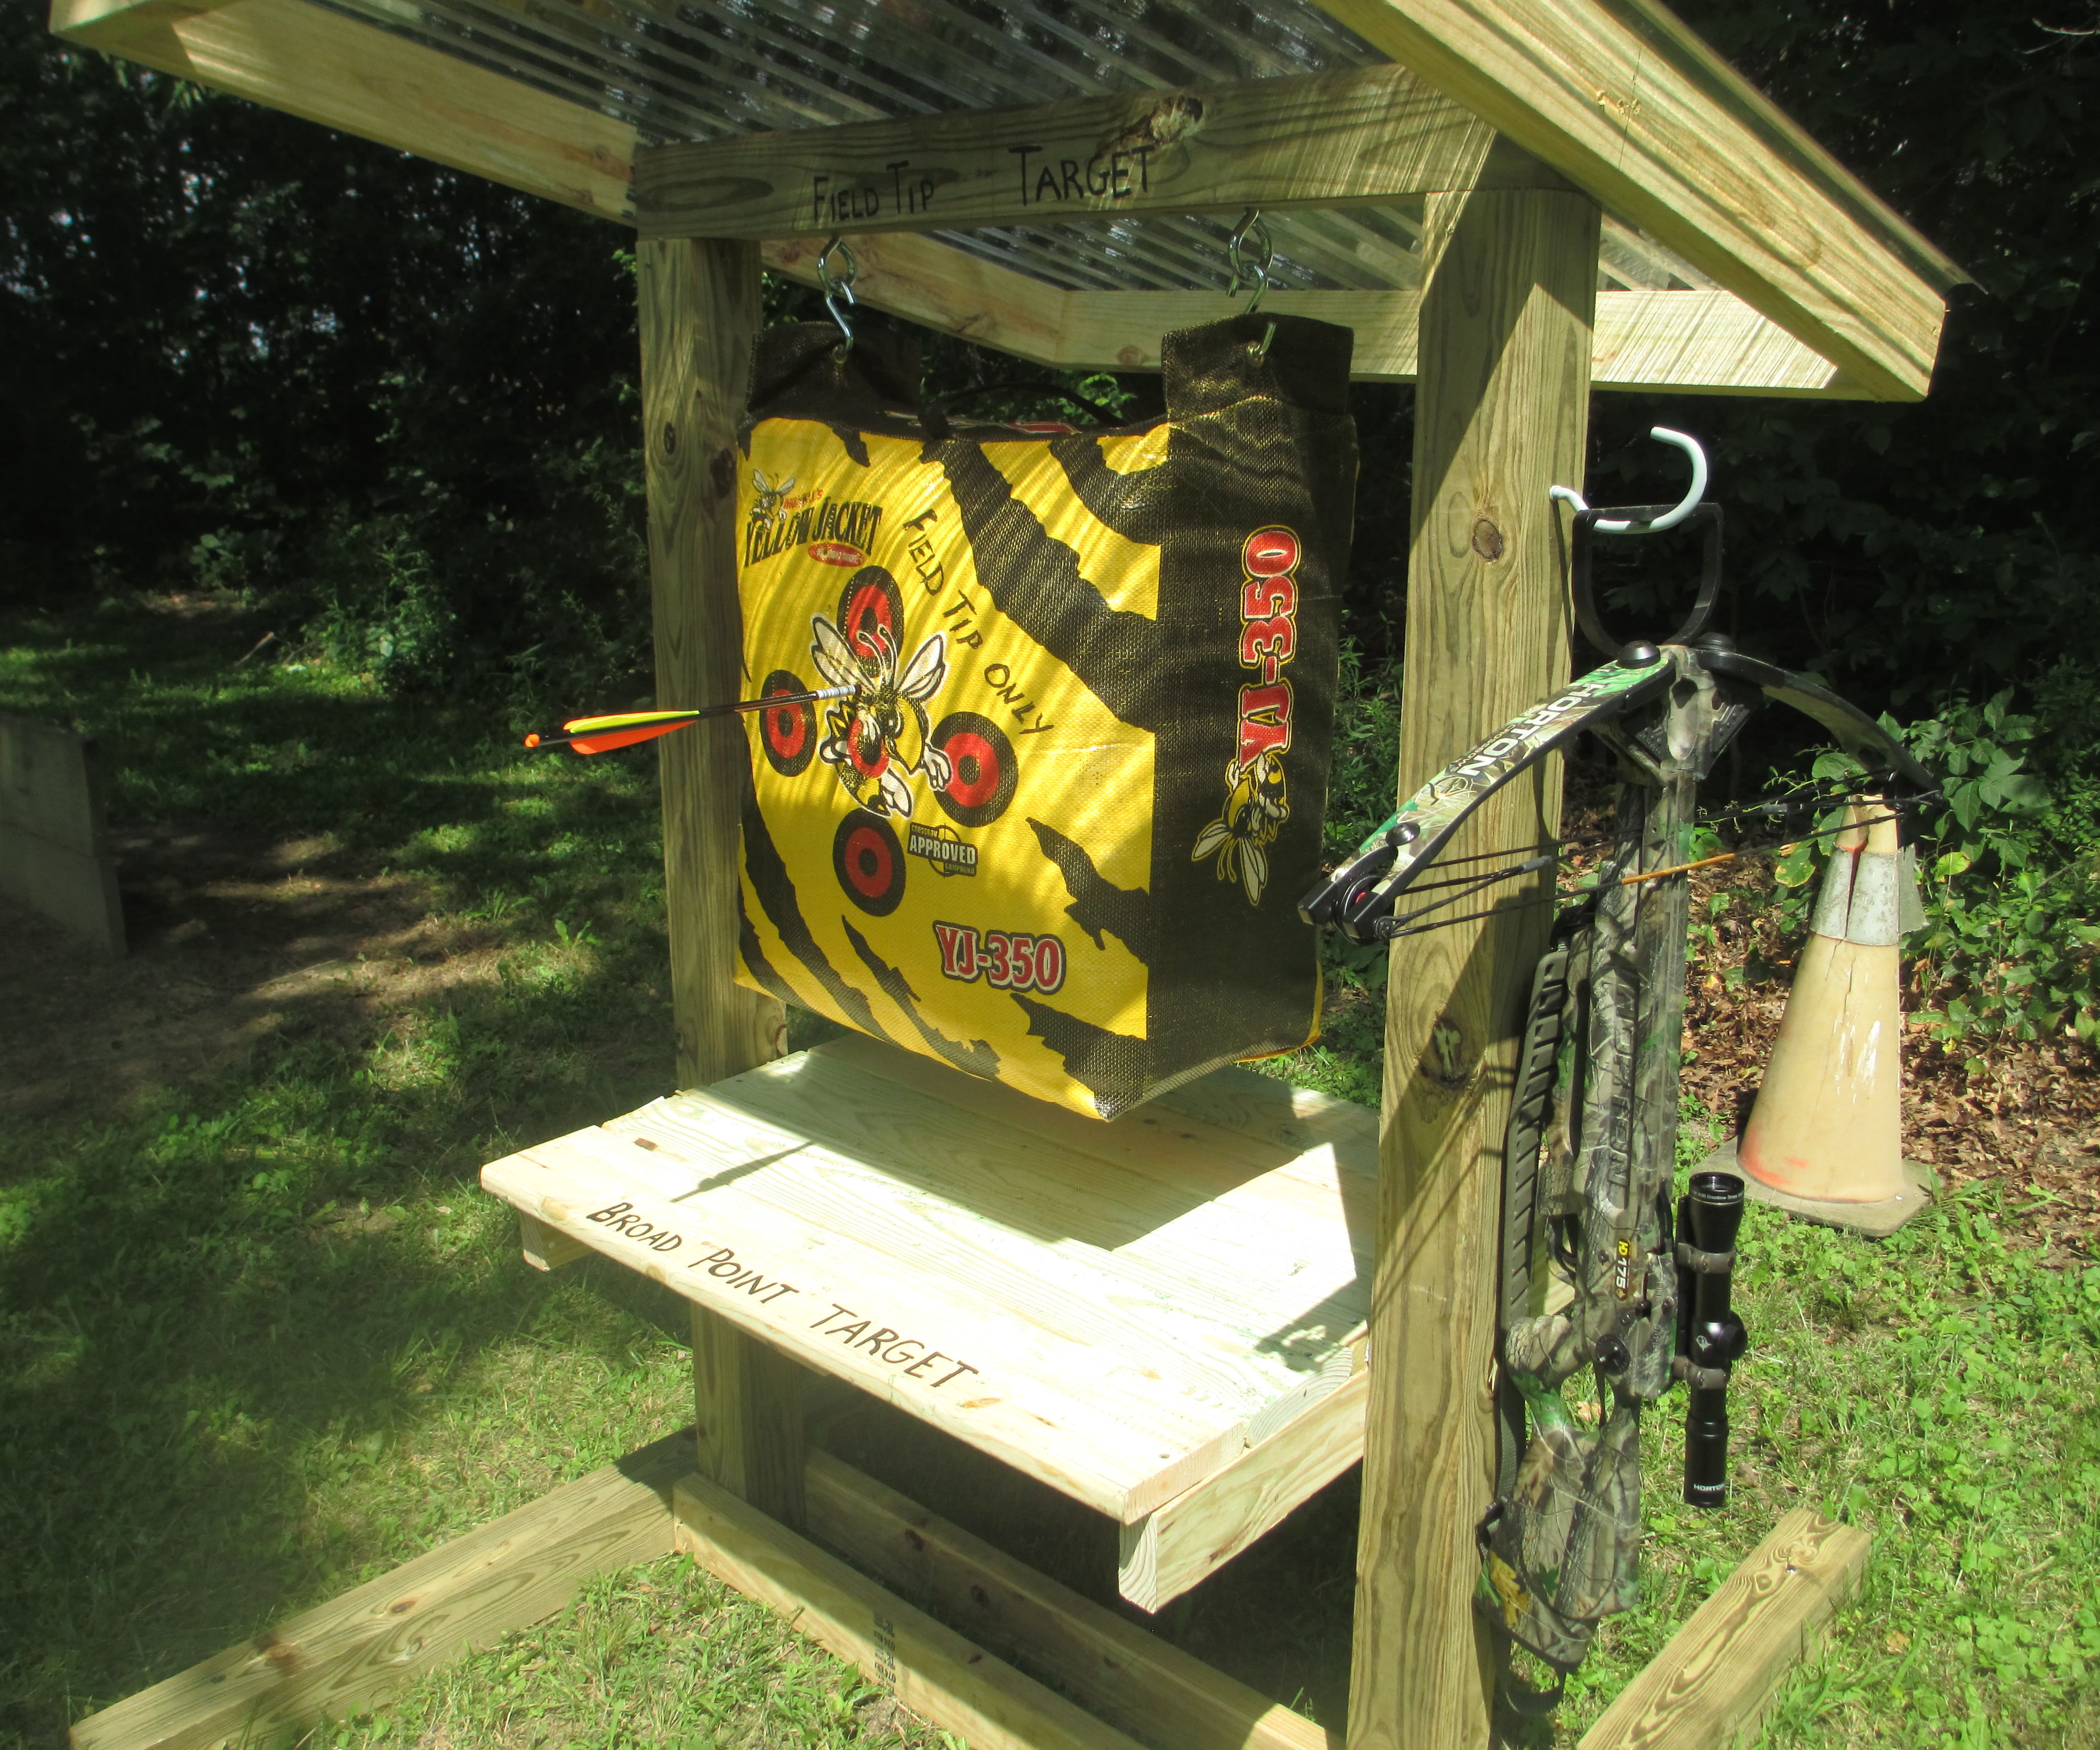 Archery Target Stand and Range Plans